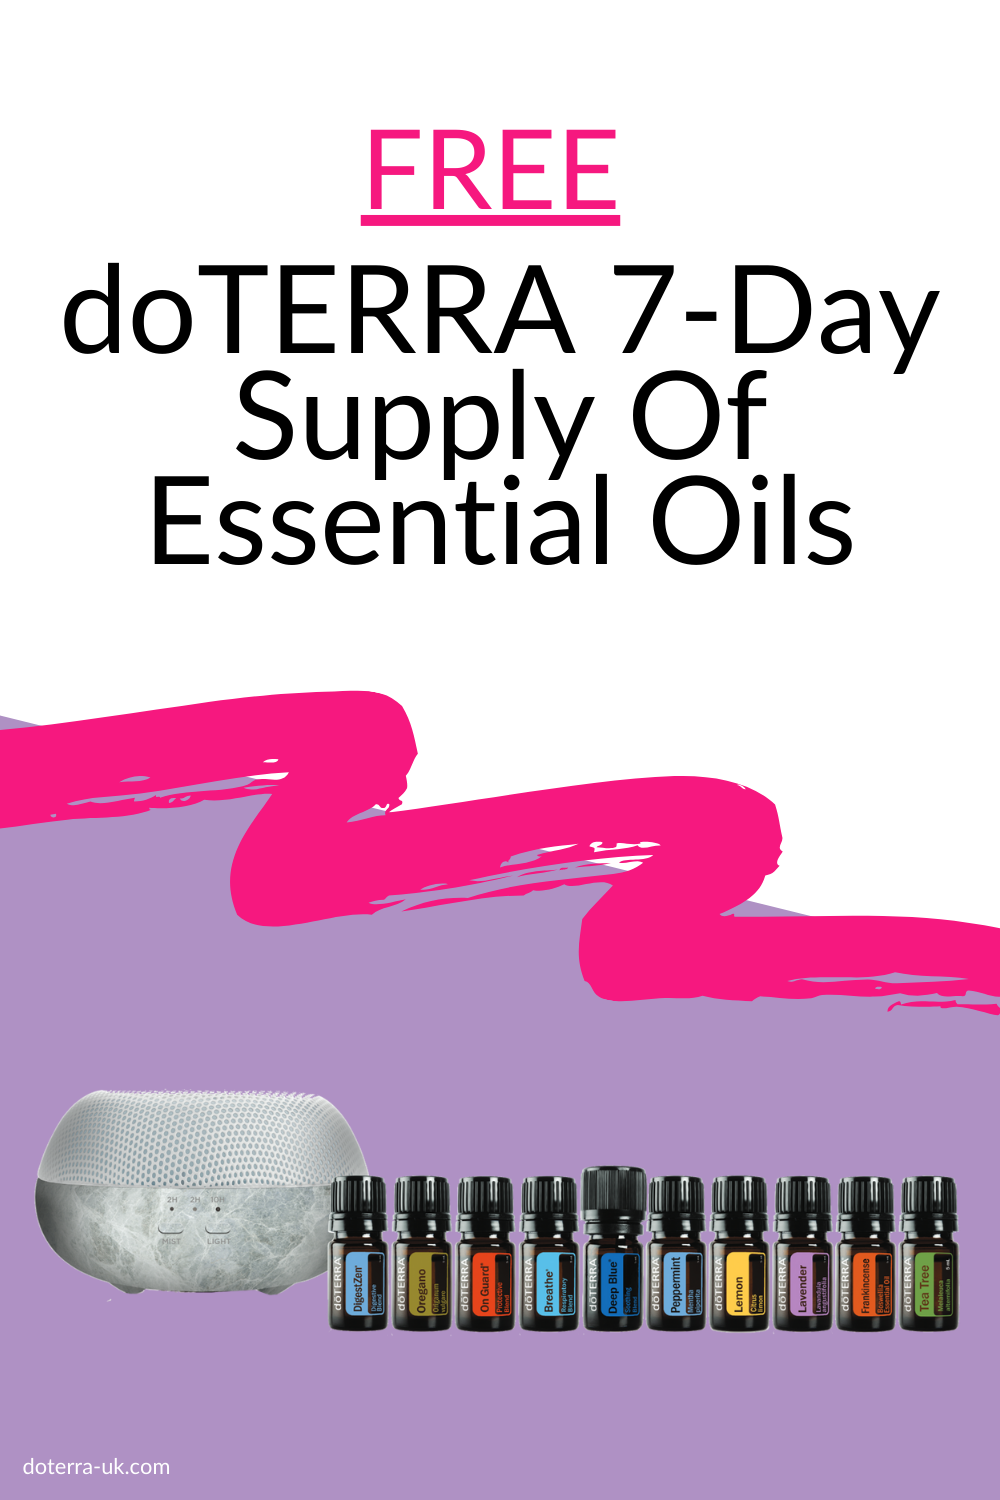 7-Day Supply Of doTERRA Essential Oil